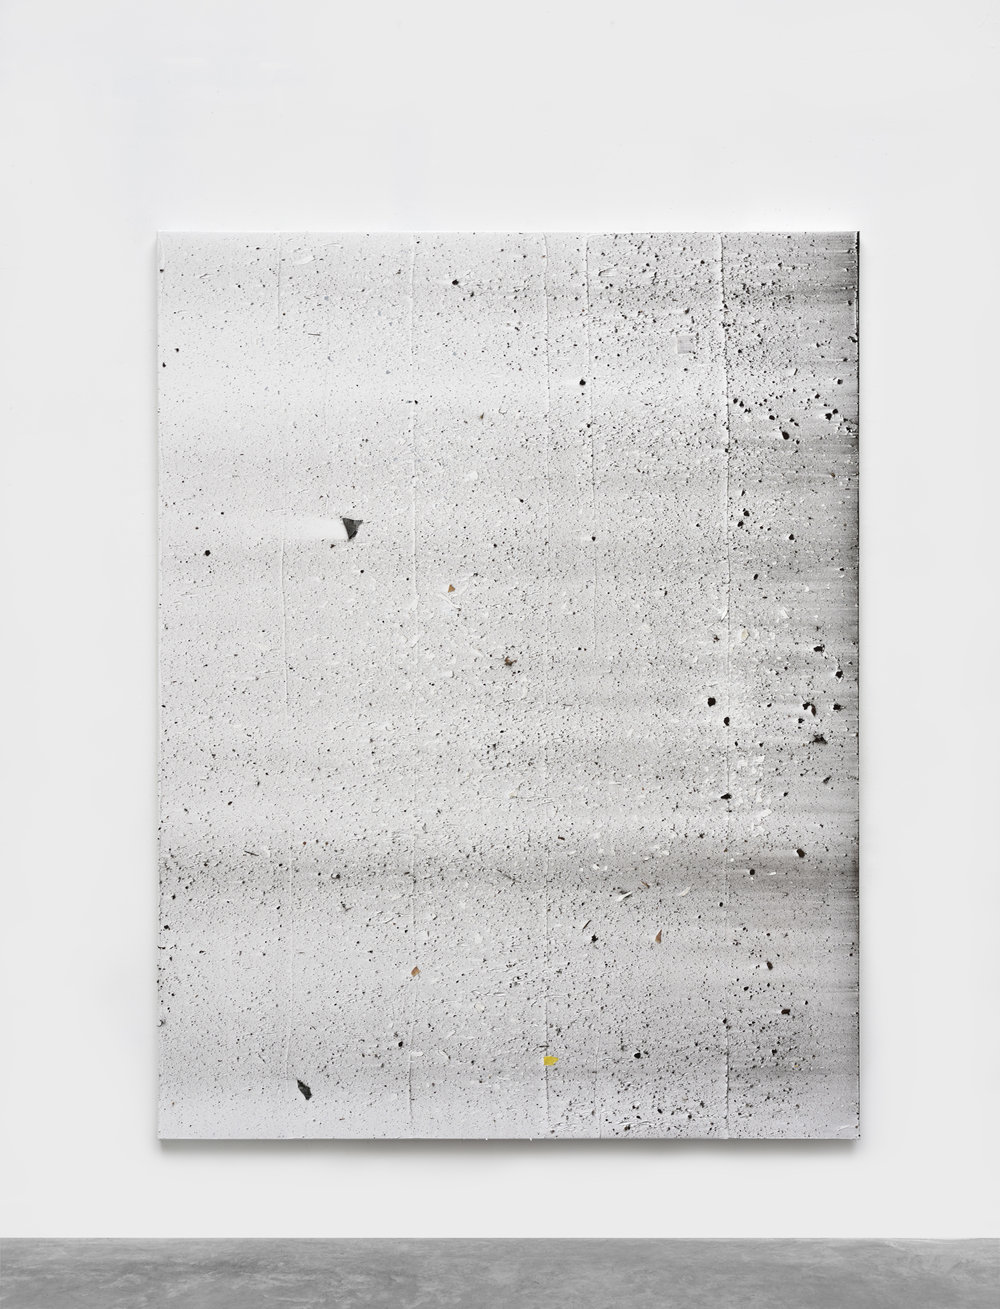 Thomas Fougeirol Untitled , 2016 Mixed media on canvas 77 5/32 x 59 7/16 in - 196 x 151 cm